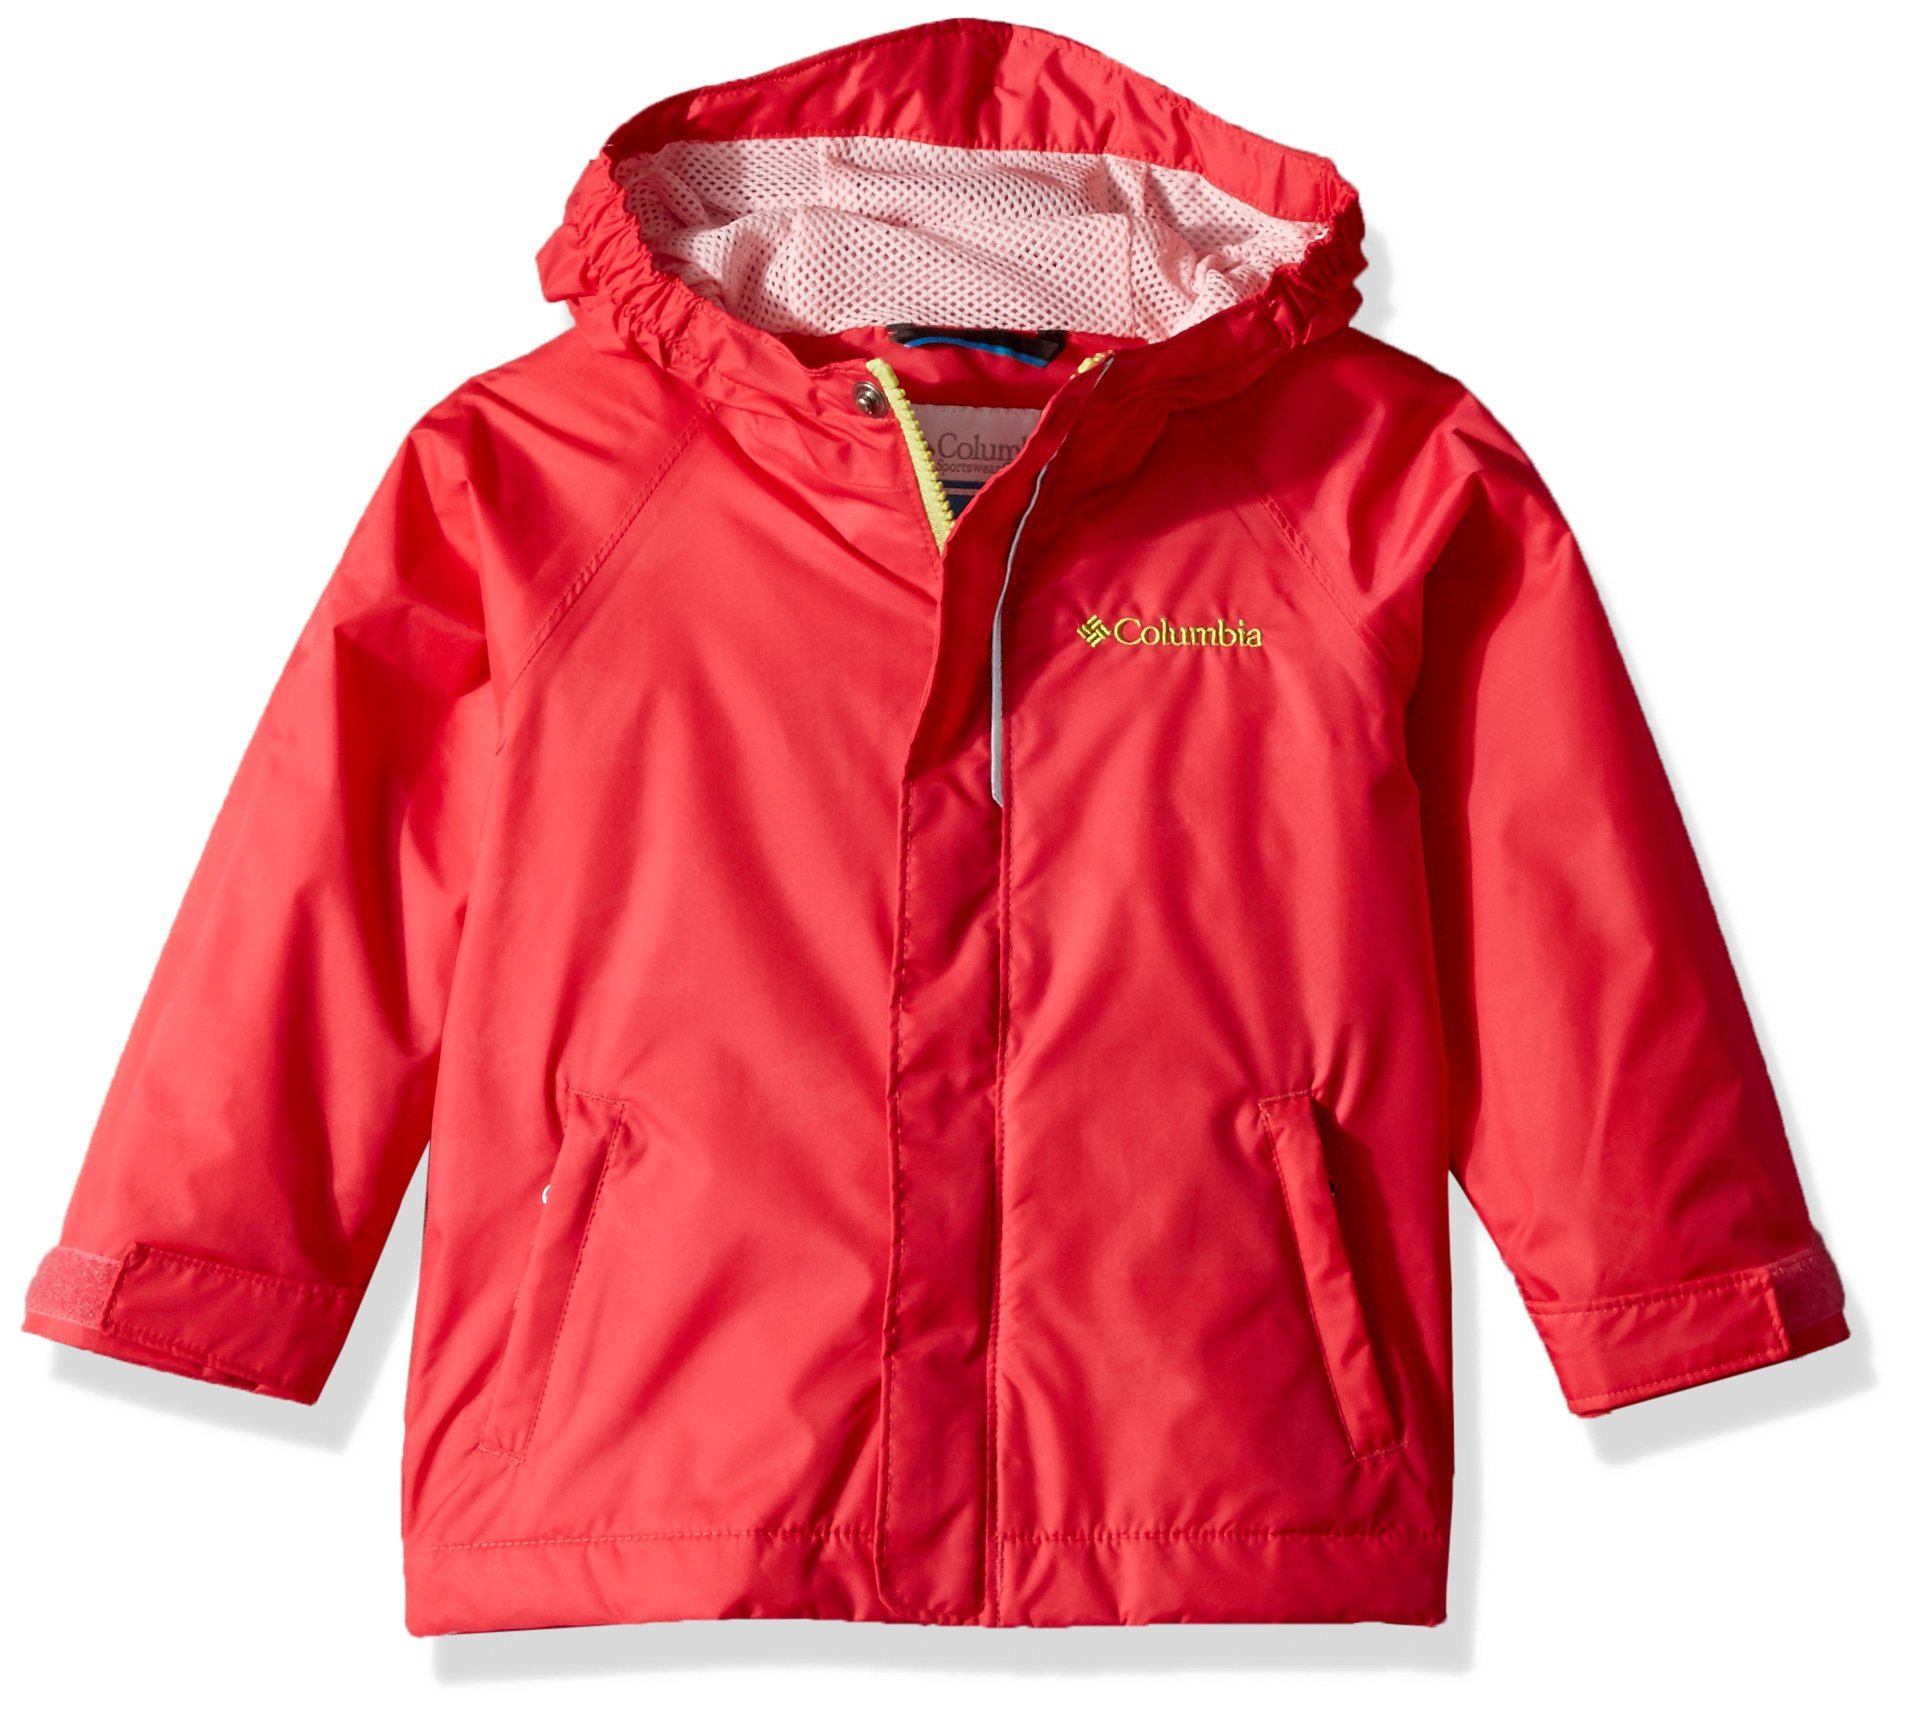 Columbia Toddler Kids Fast and Curious Rain Jacket, Punch Pink Campin, 2T